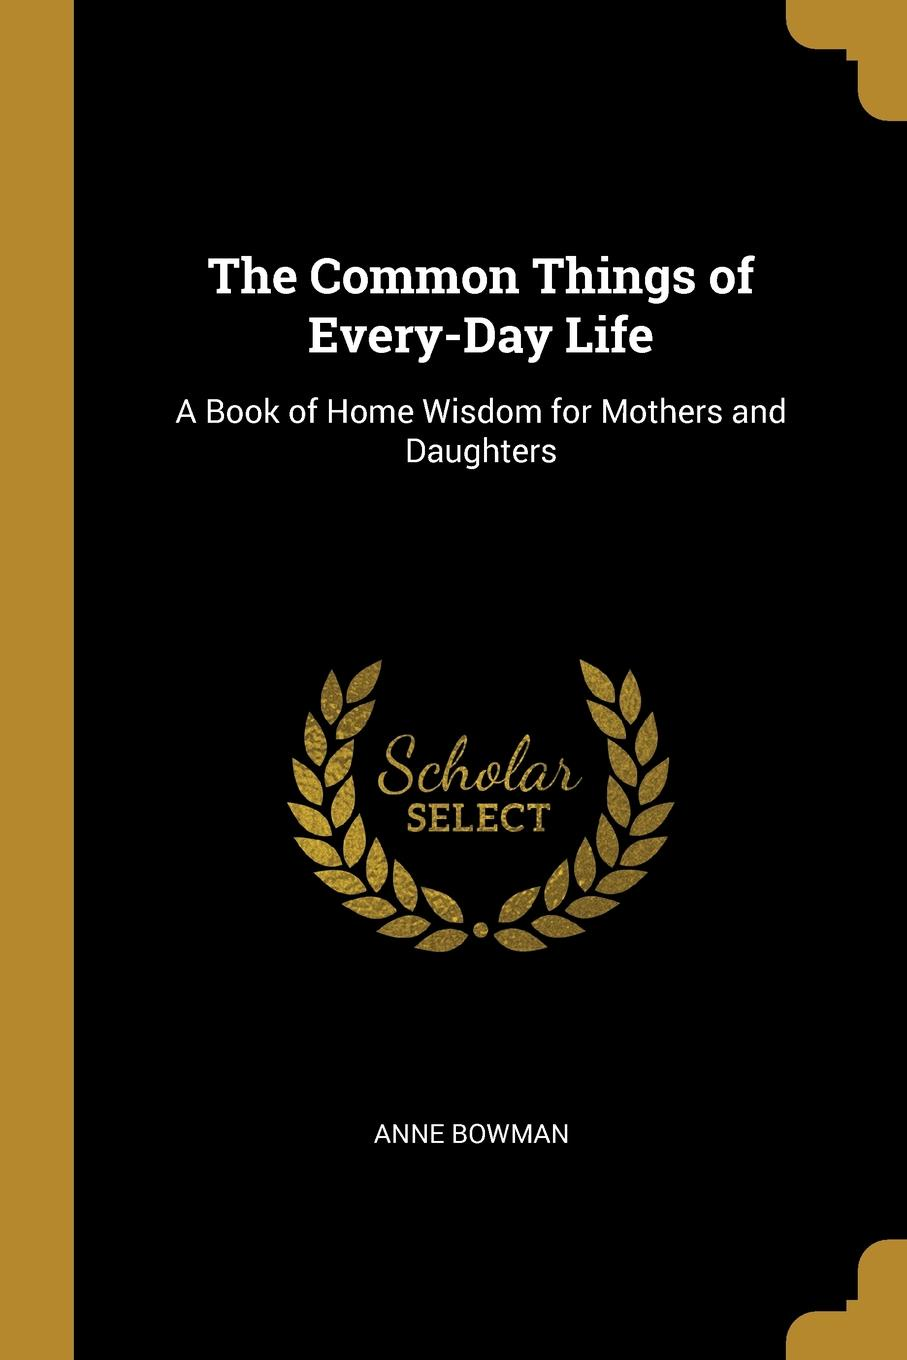 Anne Bowman. The Common Things of Every-Day Life. A Book of Home Wisdom for Mothers and Daughters